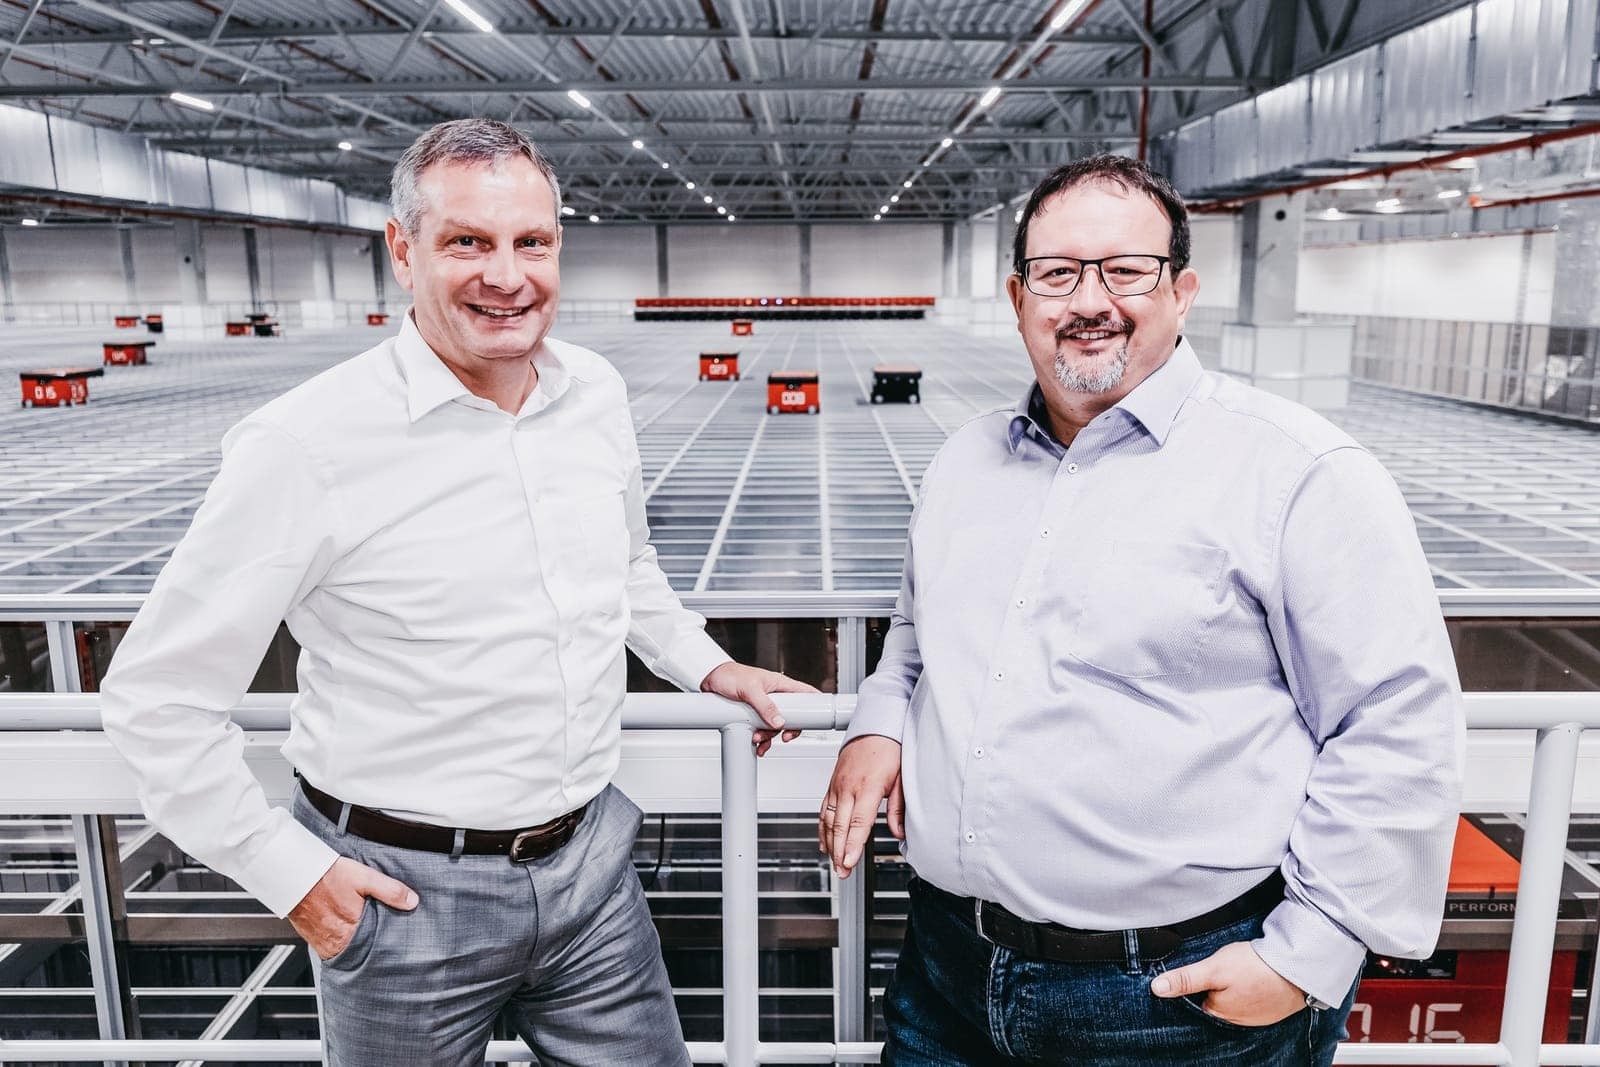 Thomas Rolle (left), Vice President European Operations at TTI and Michael Kawalier, Managing Director Sales